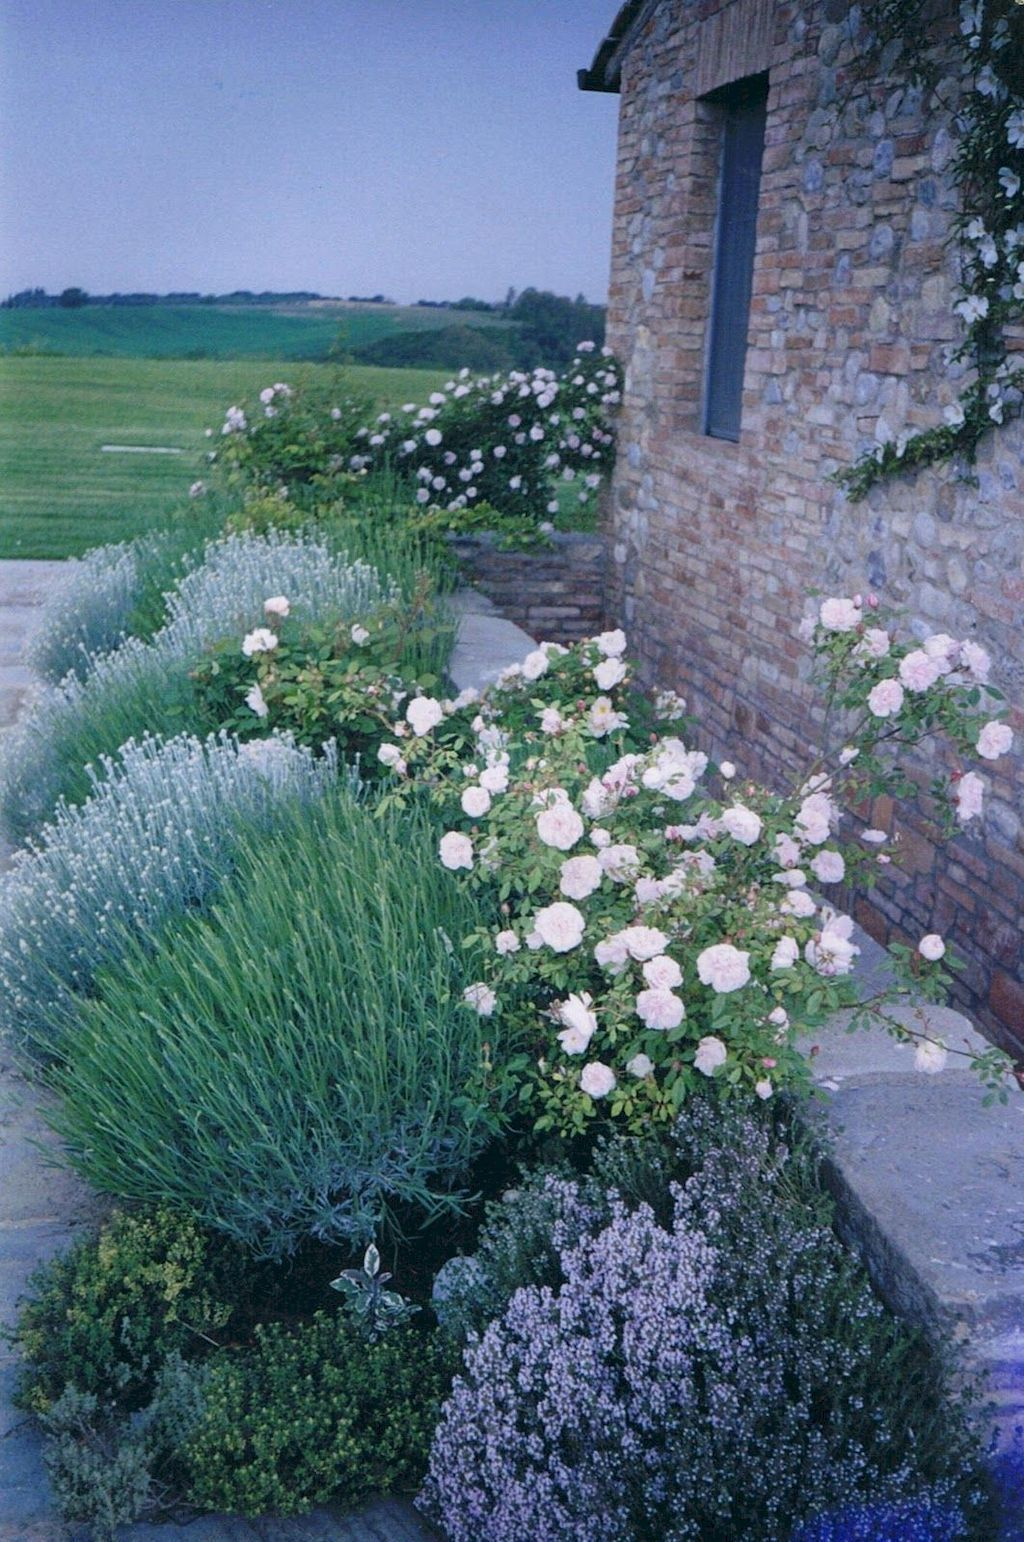 07 Stunning Cottage Garden Ideas for Front Yard Inspiration is part of Tuscan garden, Country garden decor, Tuscan garden design, Cottage garden, Mediterranean garden, Herb garden design - 07 Stunning Cottage Garden Ideas for Front Yard Inspiration